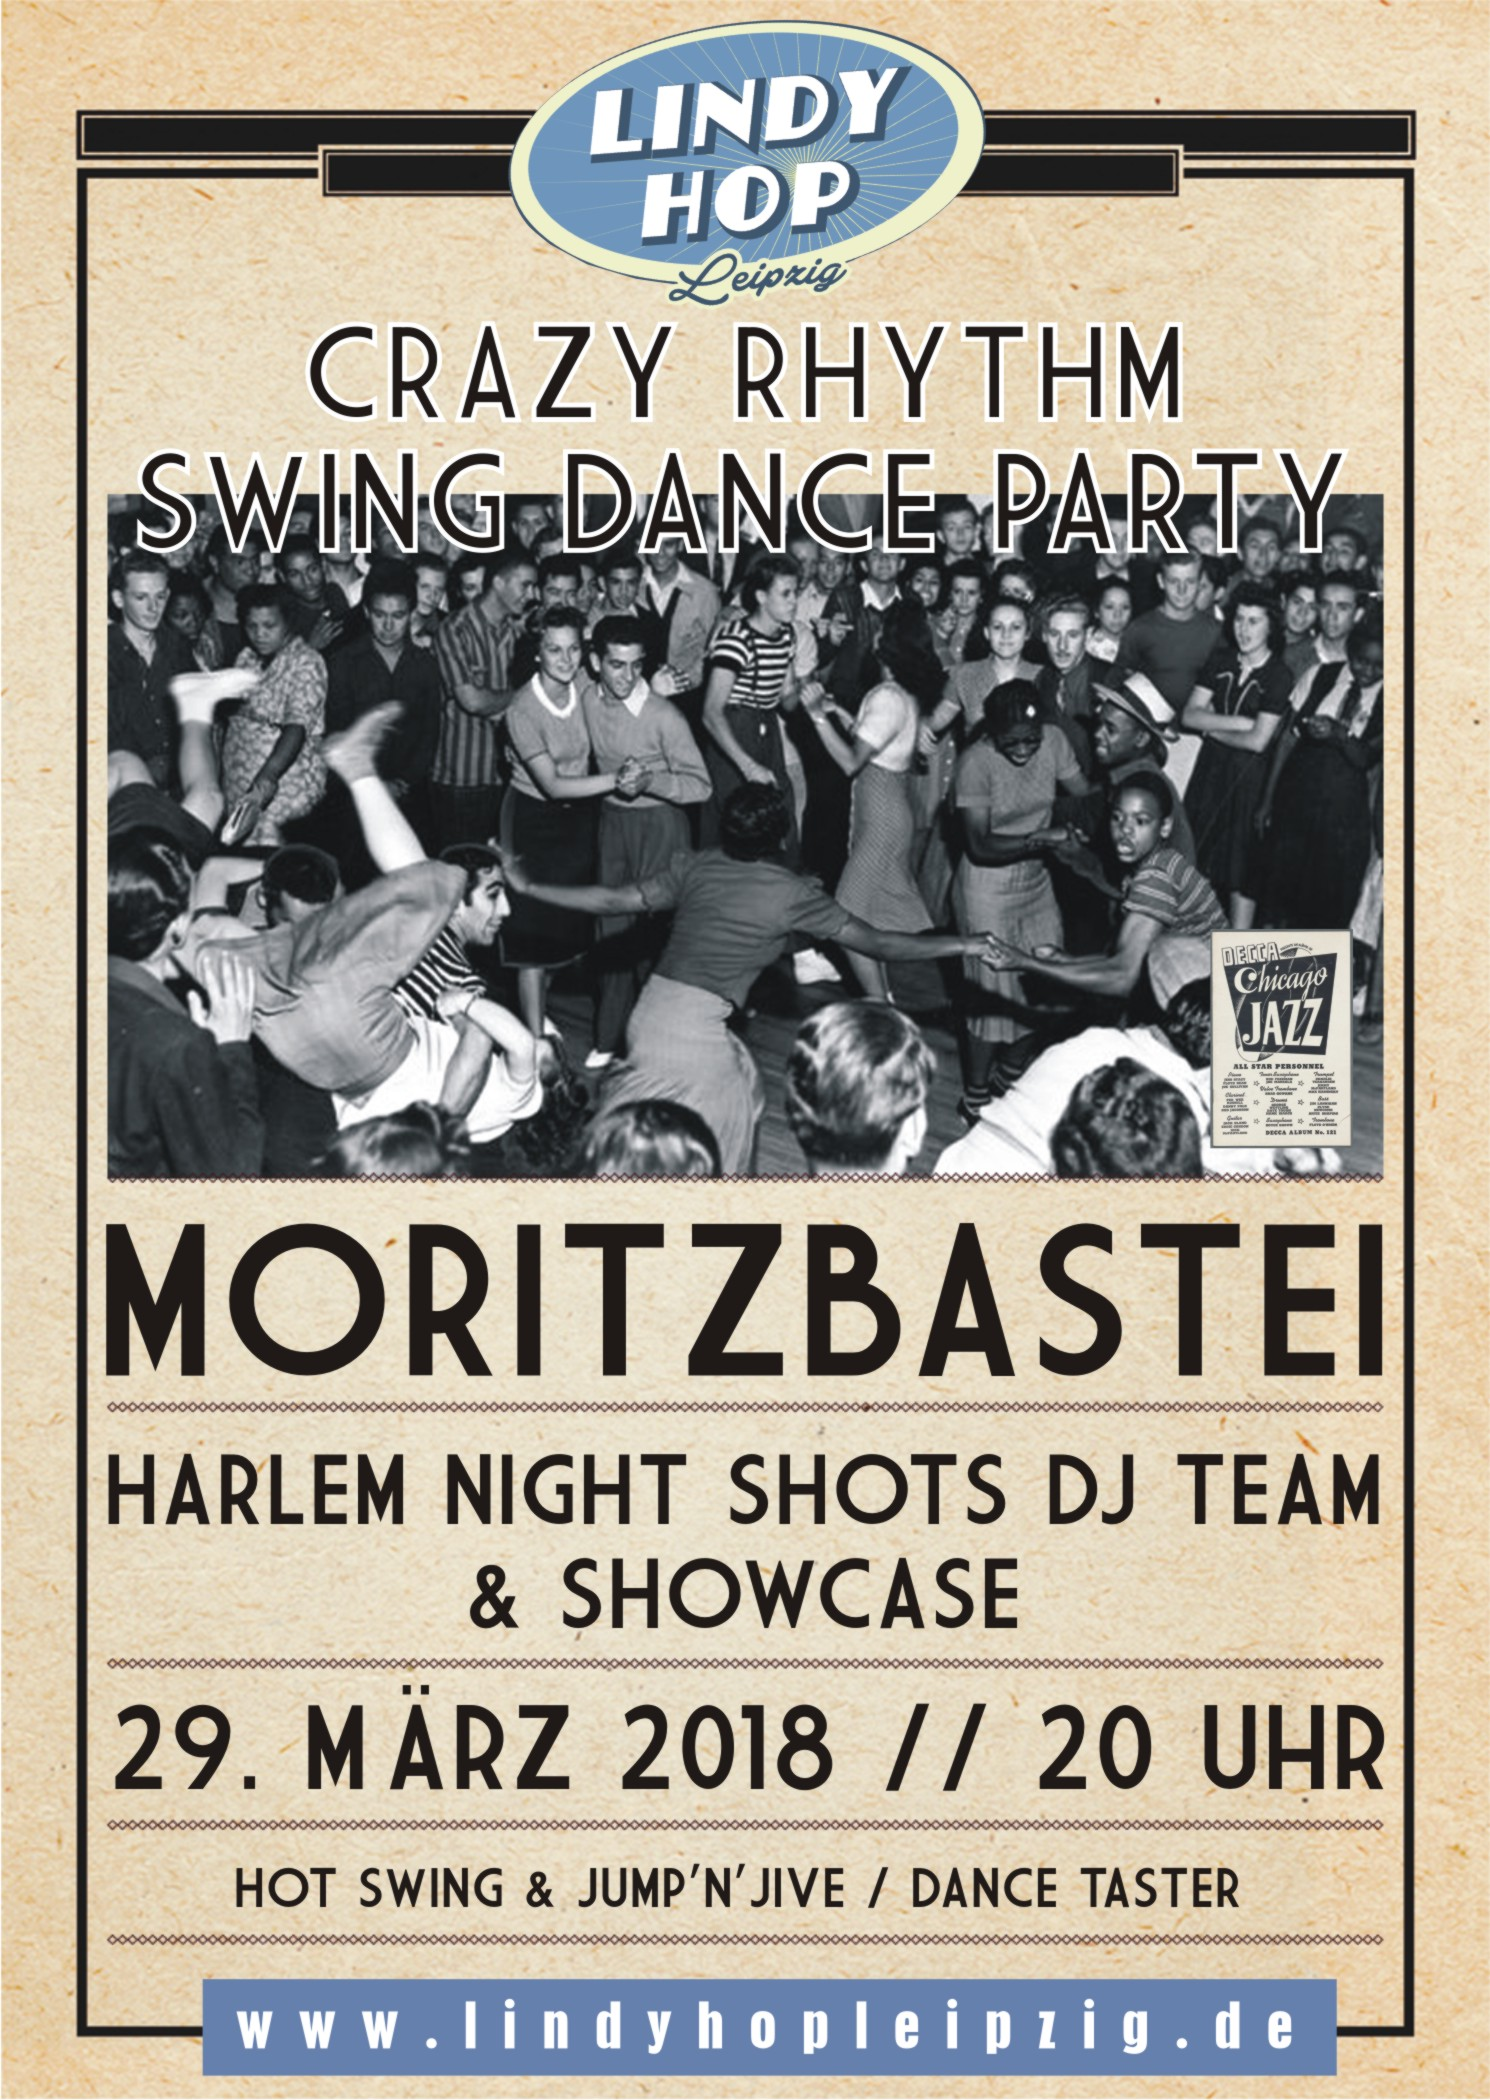 Preview: Crazy Rhythm Swing Dance Party